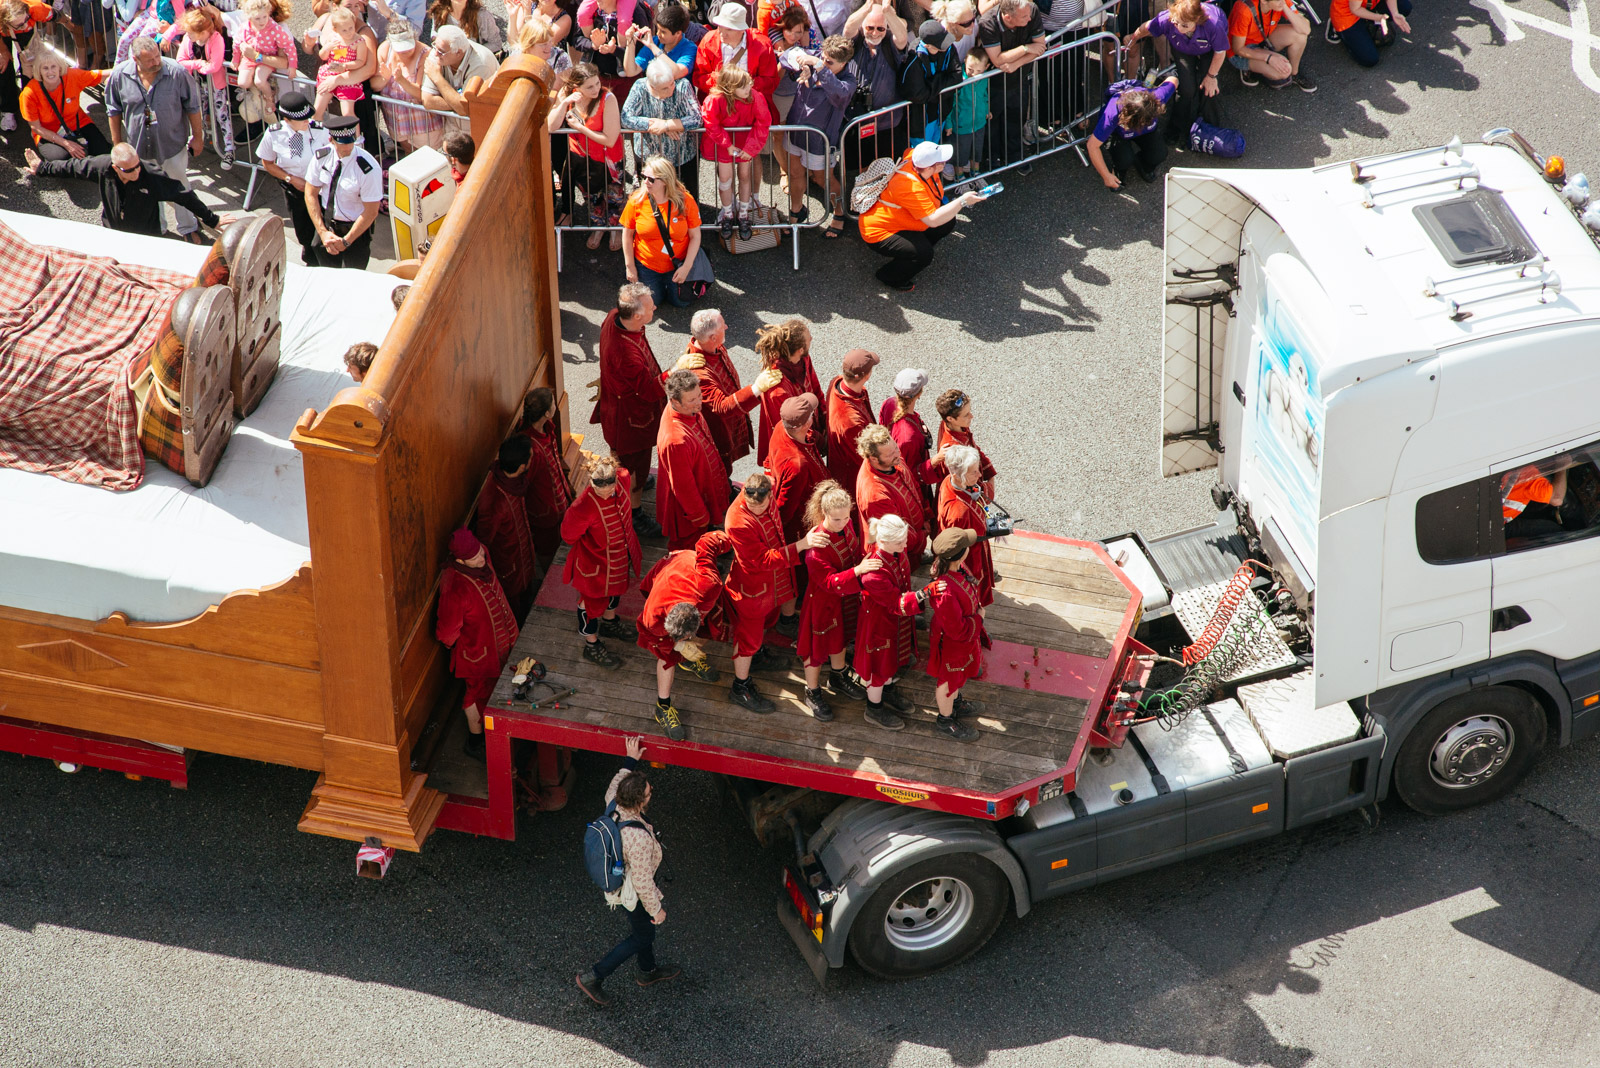 giants-liverpool-sunday-2014-pete-carr-9156